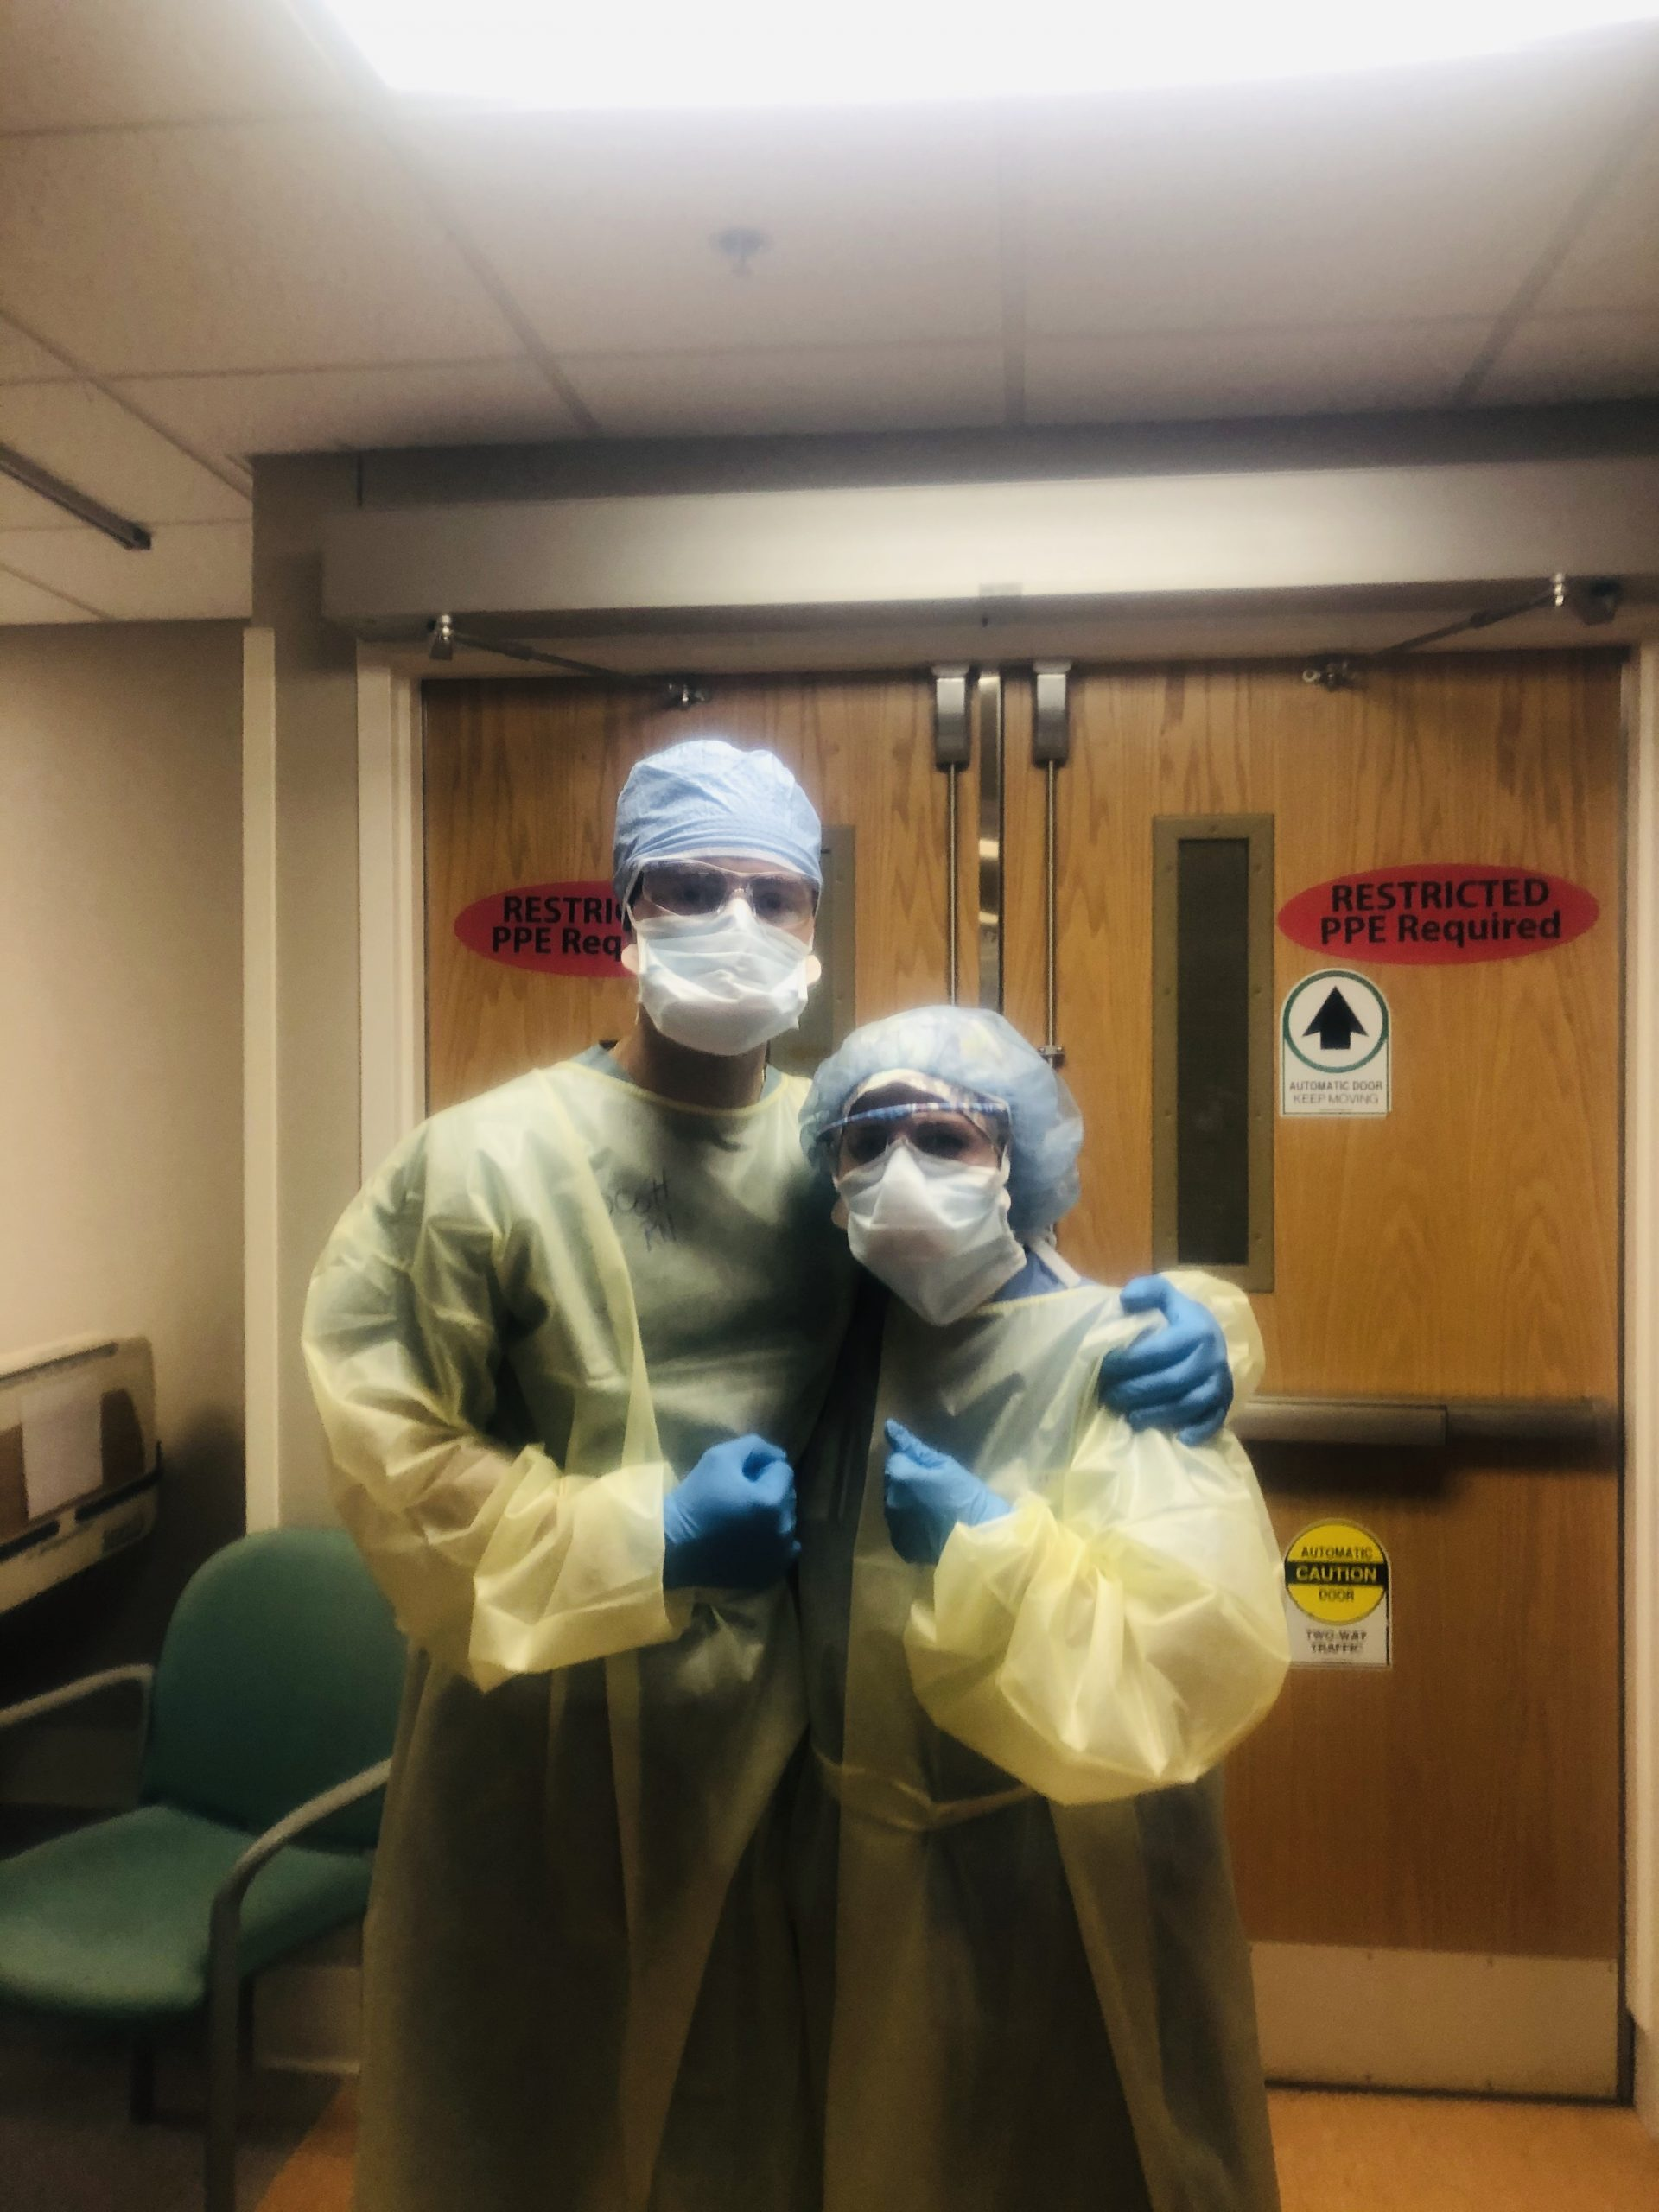 UNCG nurse anesthesia student Scott Dollar and Ali Cosgrove